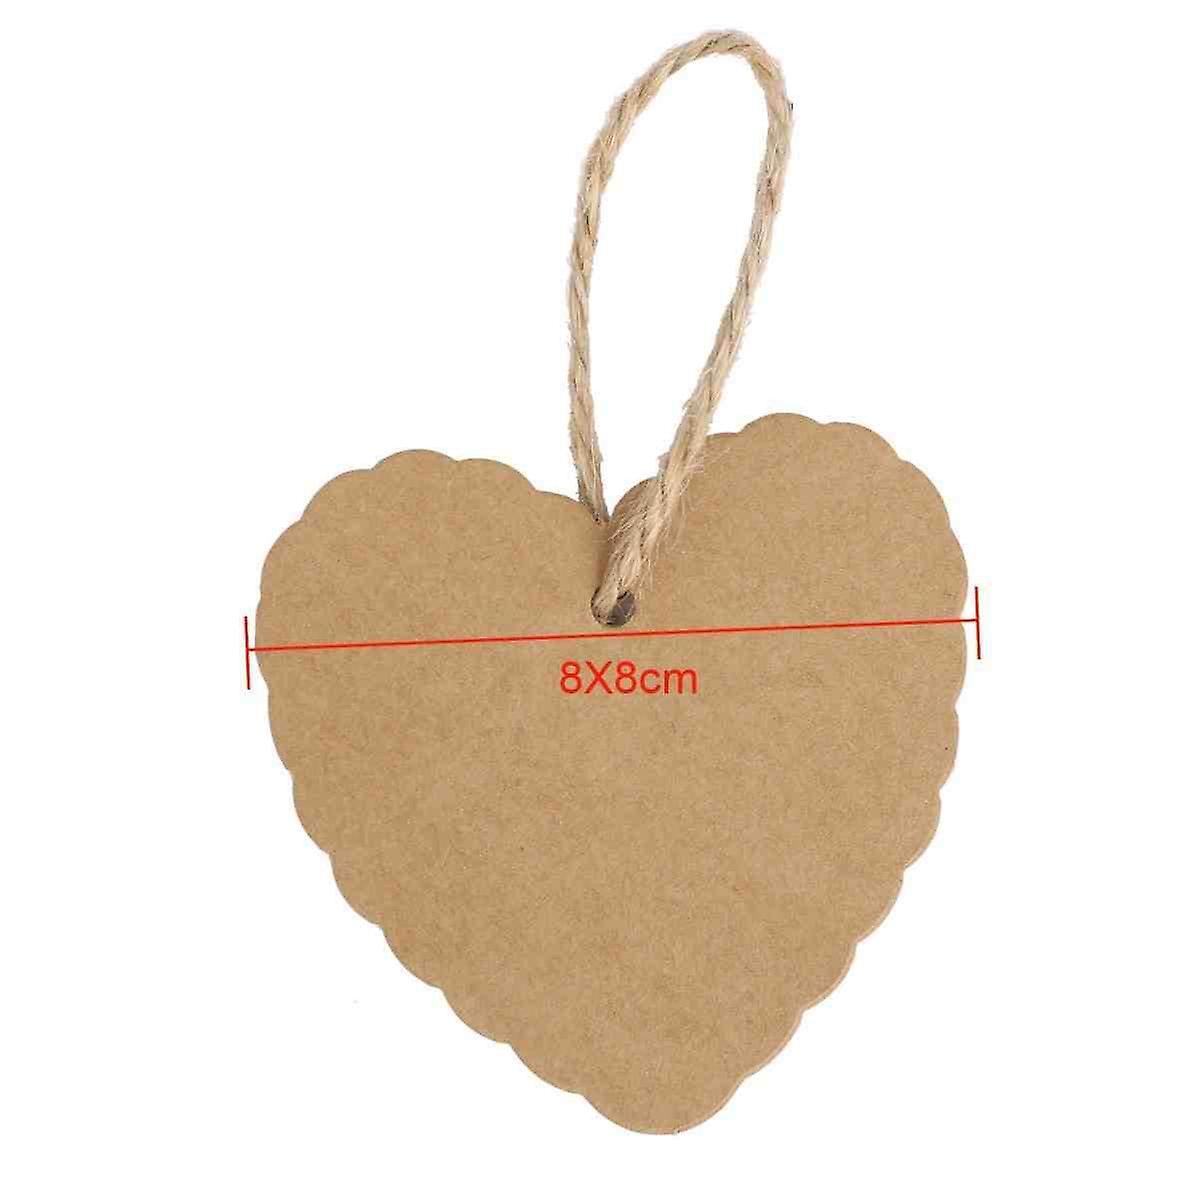 100 X Heart Shape Gift Tags Paper Chains Labels Valentine Party Personalised Labels + 20m String